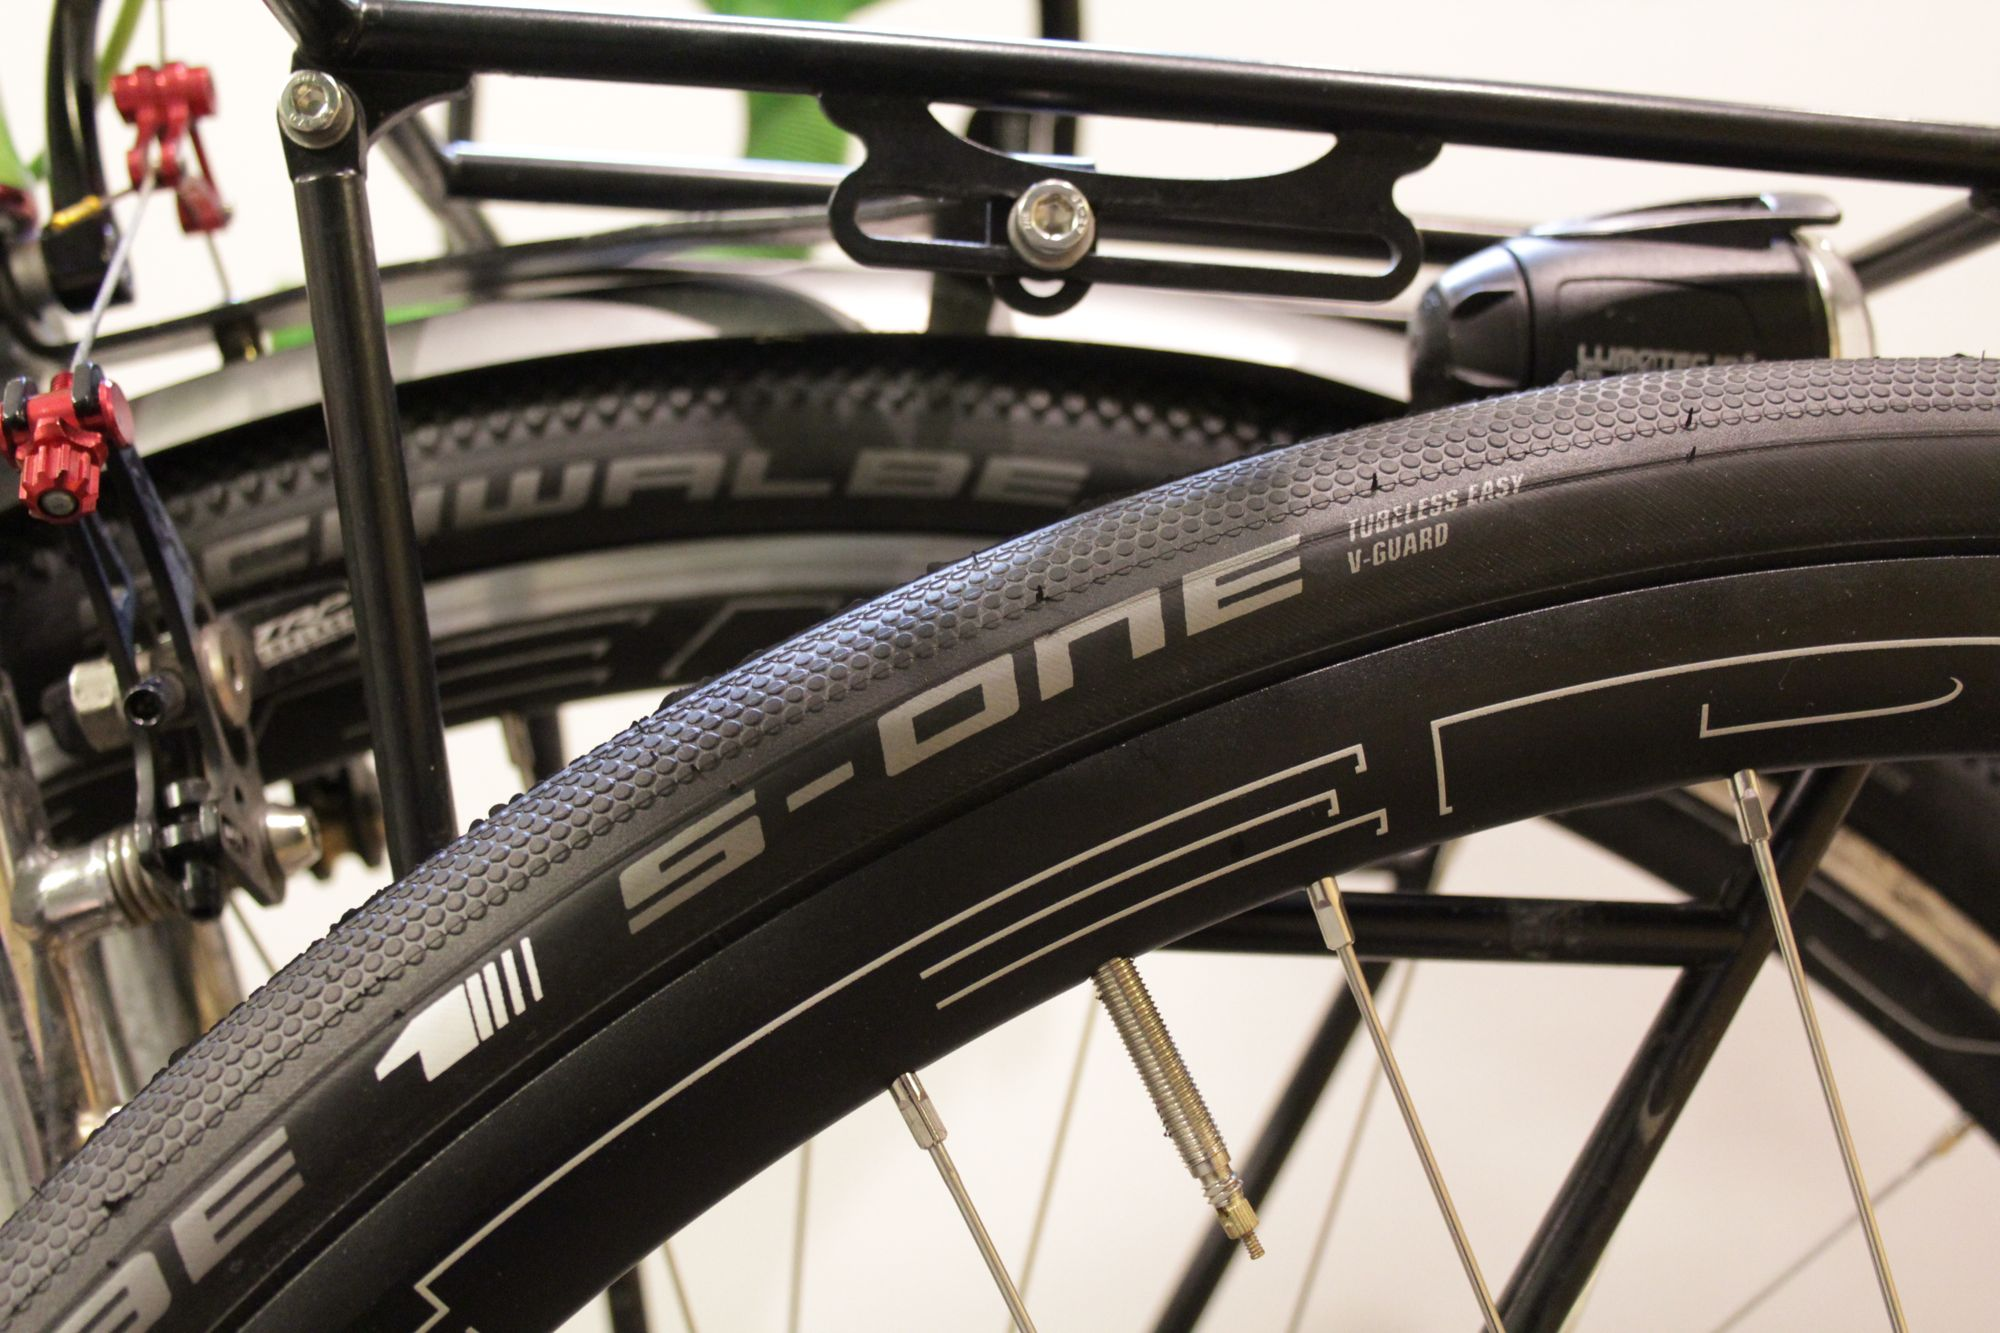 How To Read Tire Size >> On Test Now: Schwalbe S-One and G-One tubeless tyres - Bike Hugger